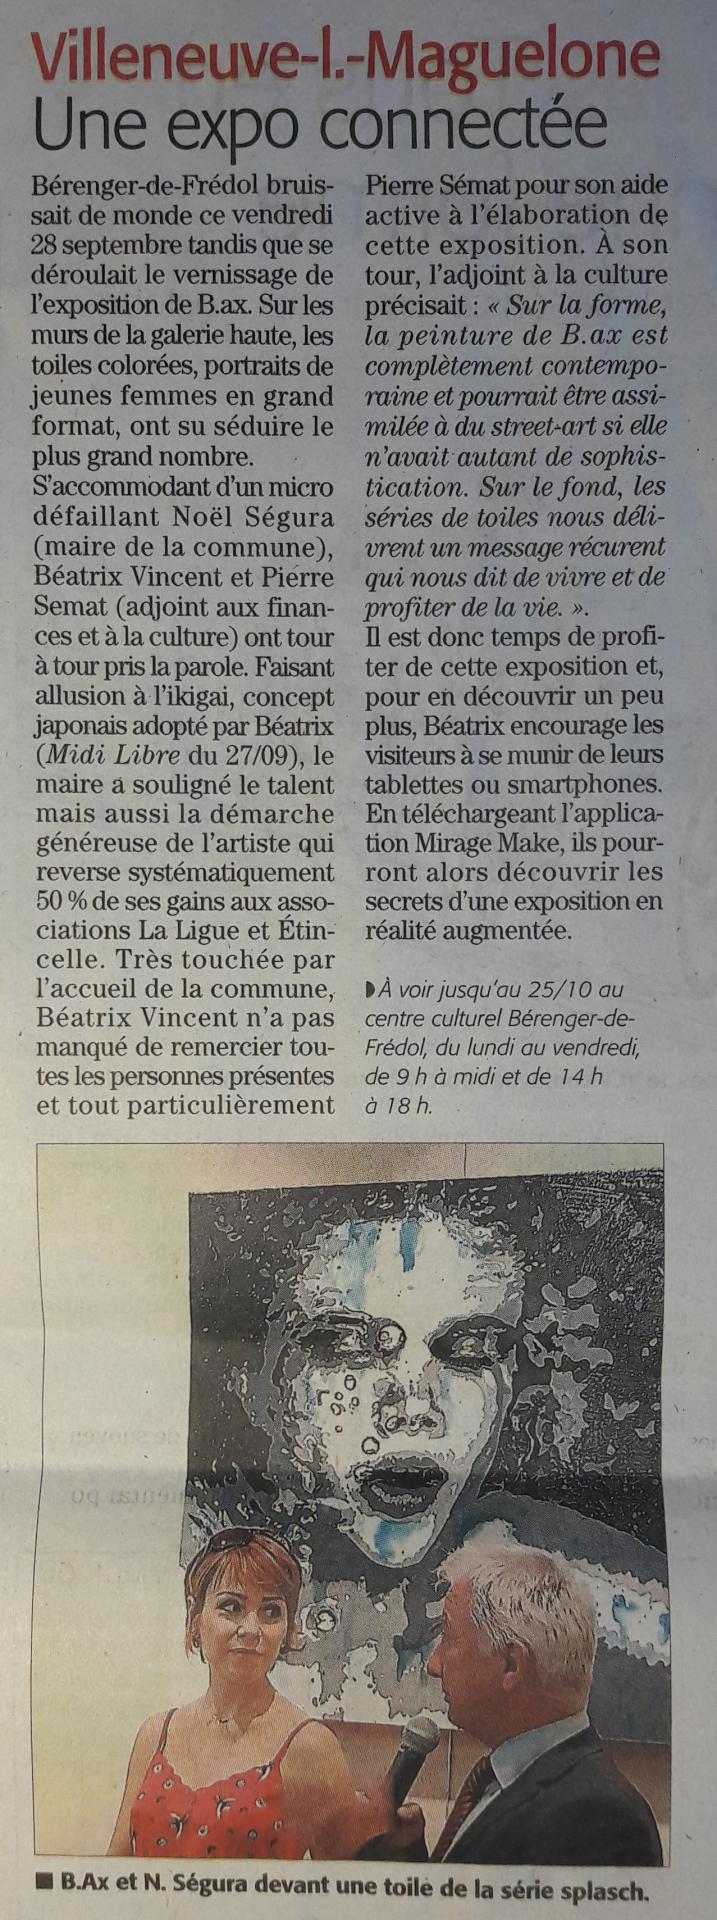 Midi libre article du 01 octobre 2018